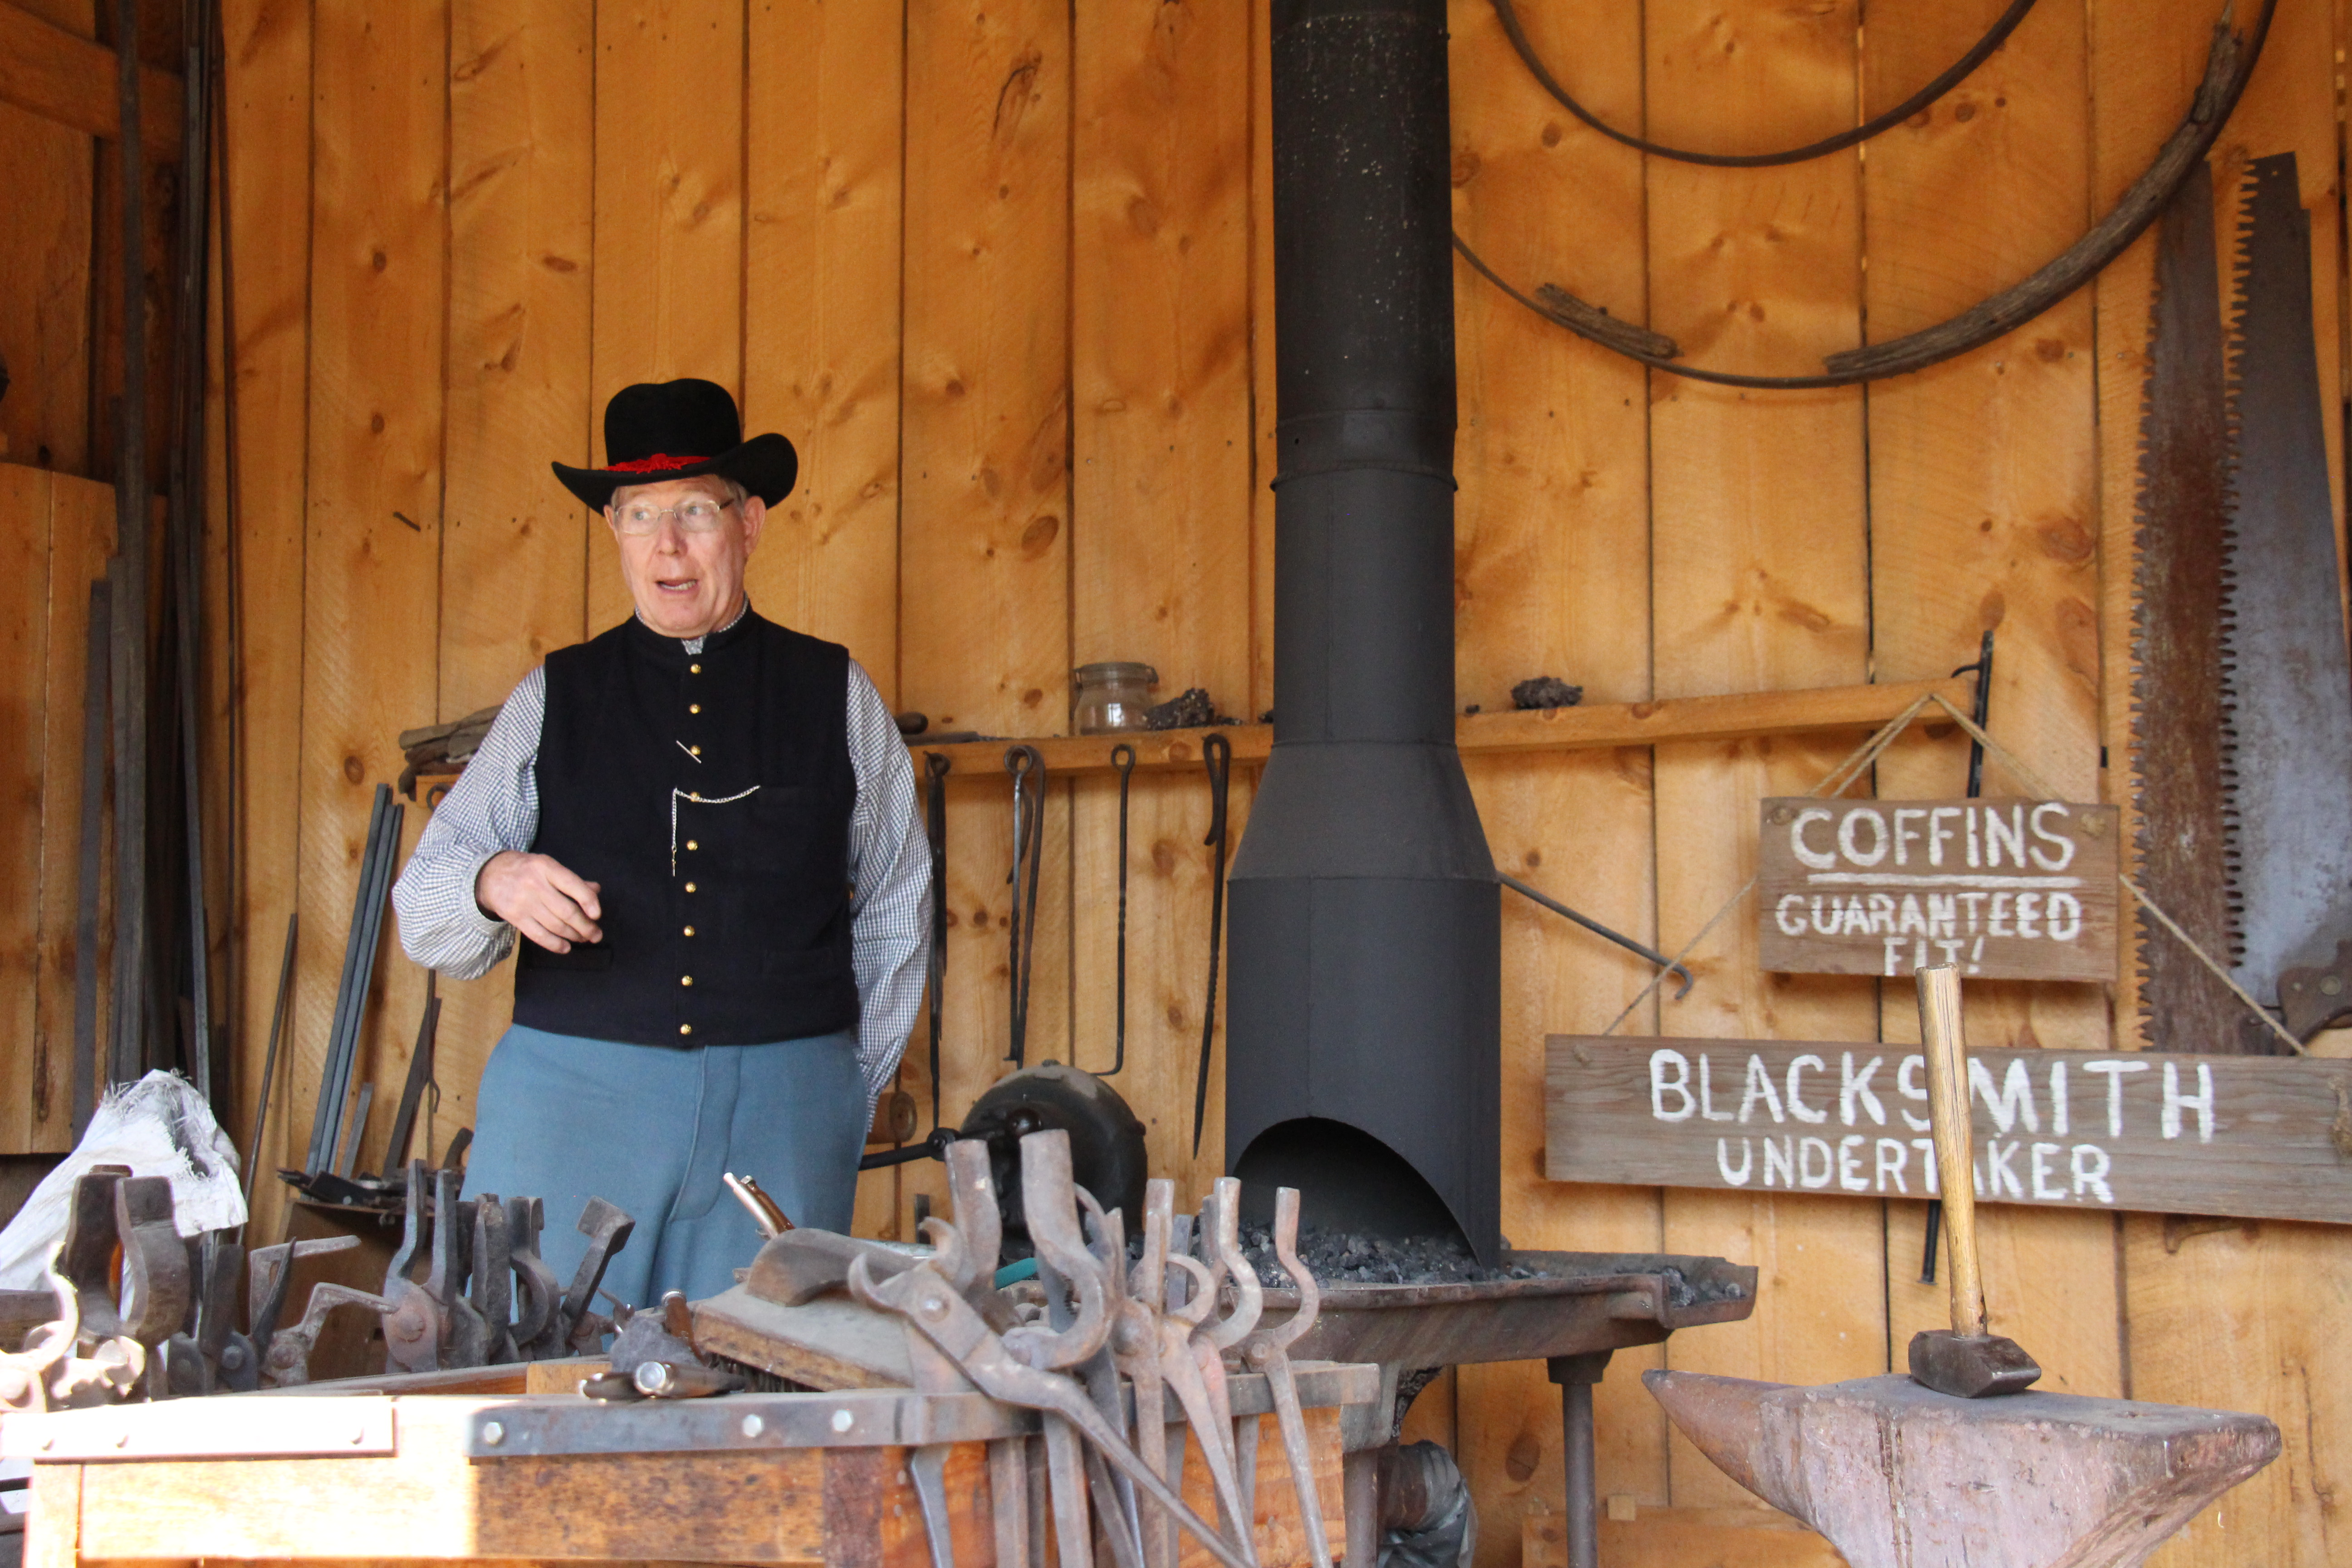 One of Four Mile's docents and blacksmiths explains the process to visitors